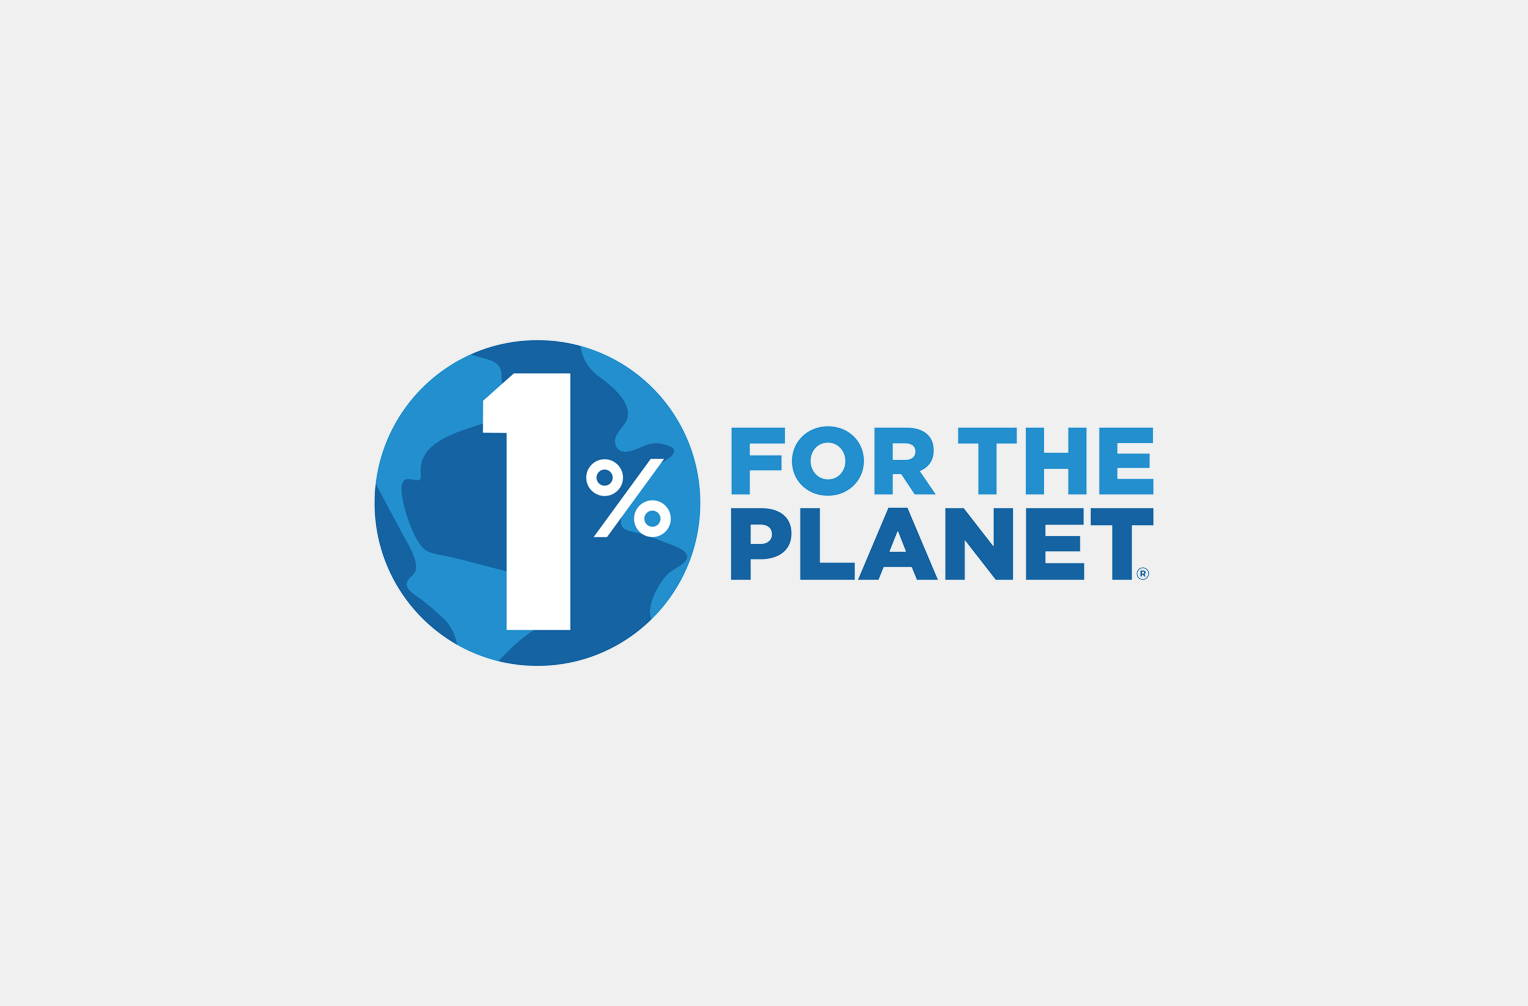 Ozeano has a gold-standard membership to 1% for the planet organisation